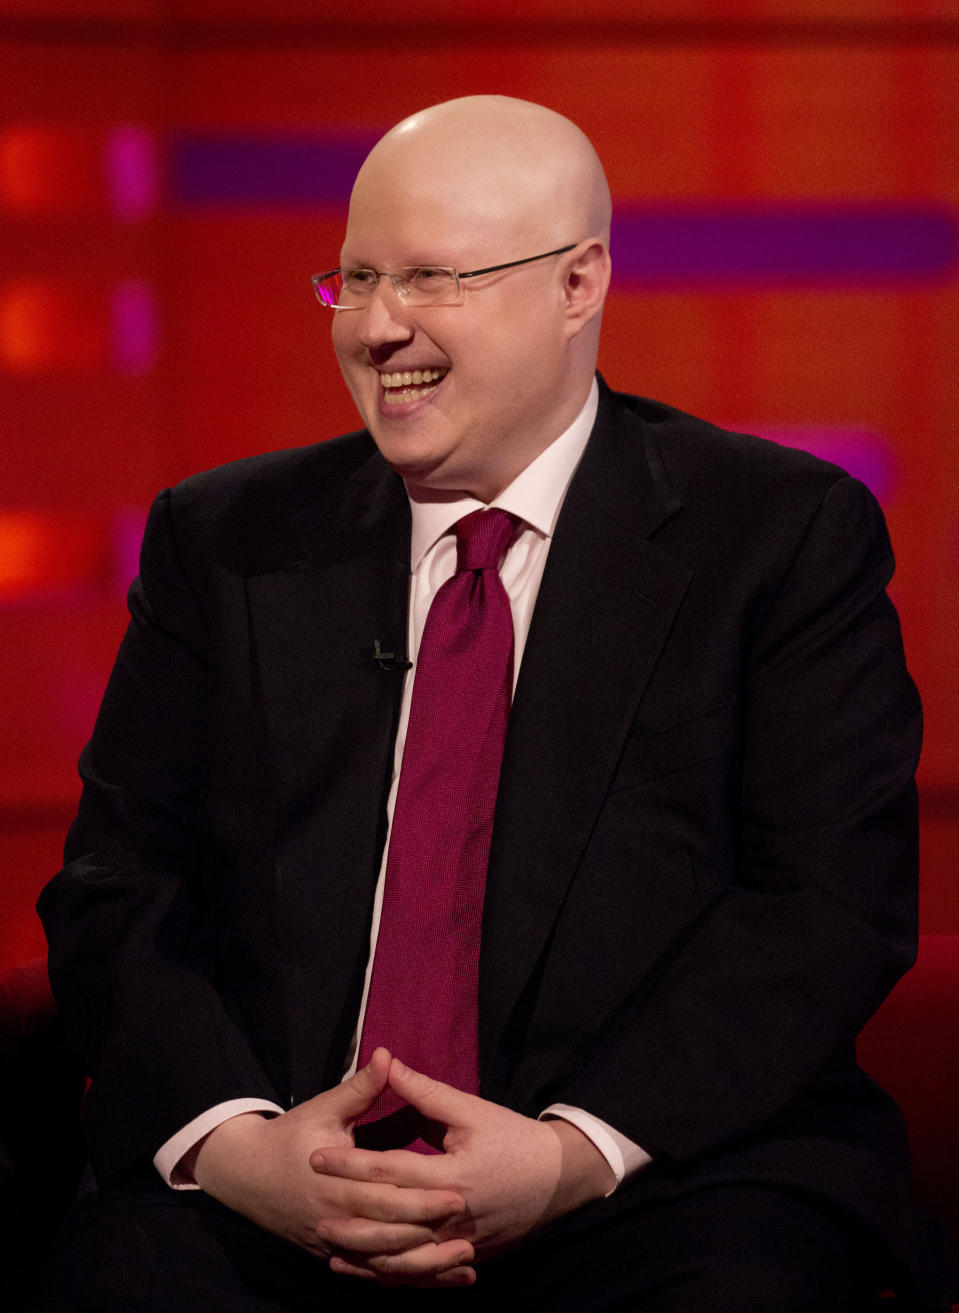 Matt Lucas during filming of the Graham Norton Show at the London Studios, to be aired on BBC One on Friday evening.